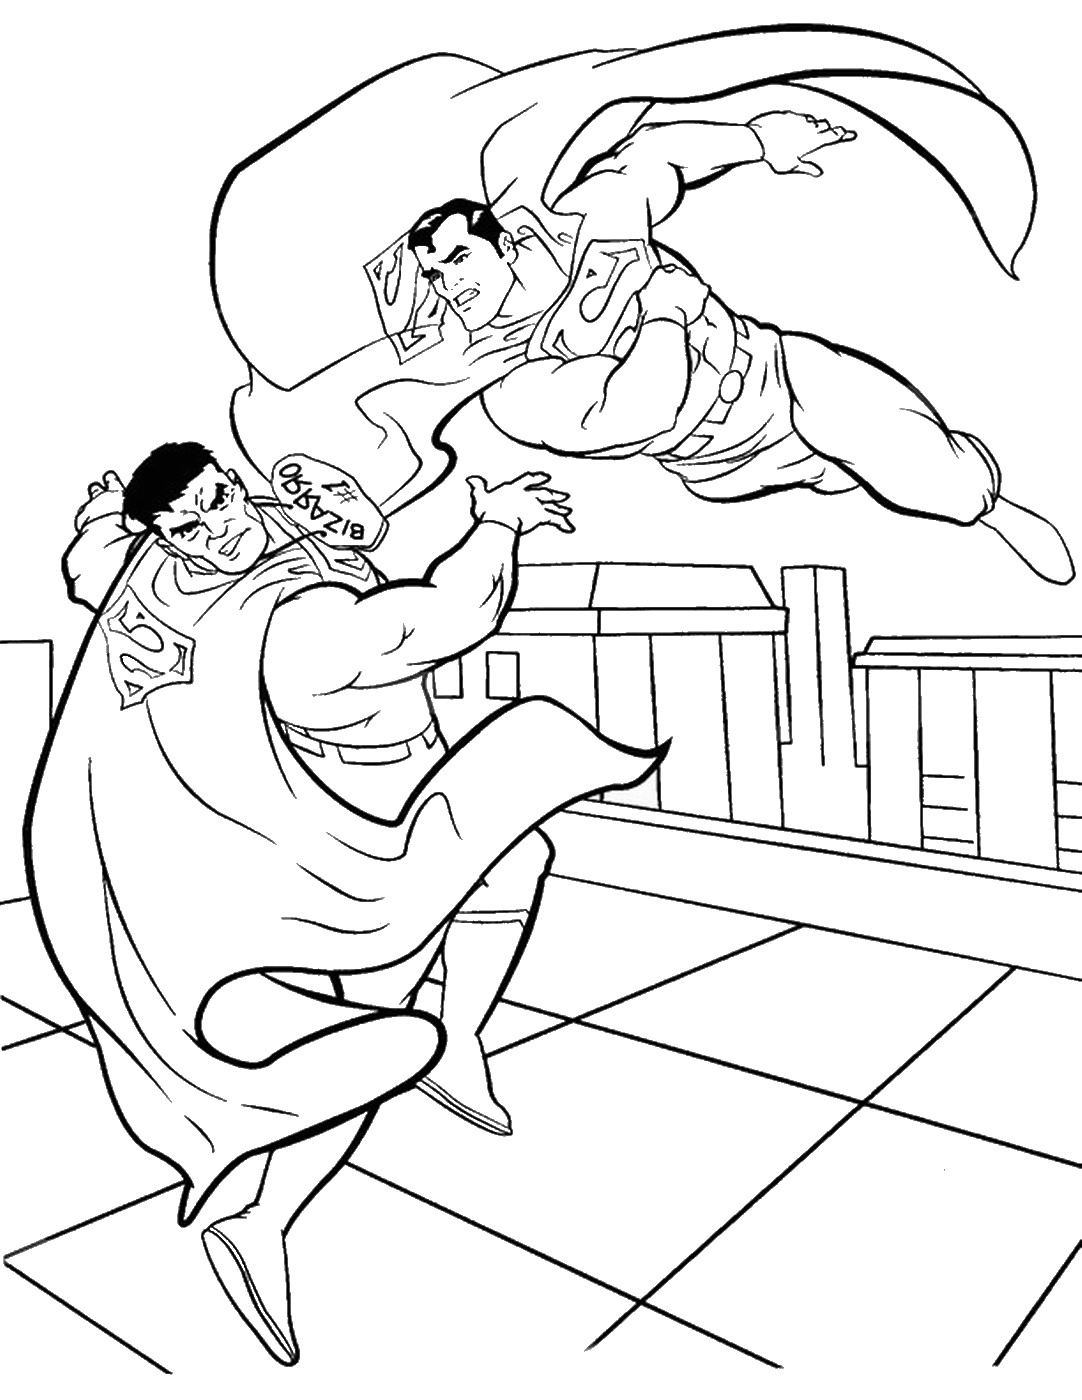 superman cartoon pictures for colouring superman coloring pages to download and print for free cartoon for superman pictures colouring